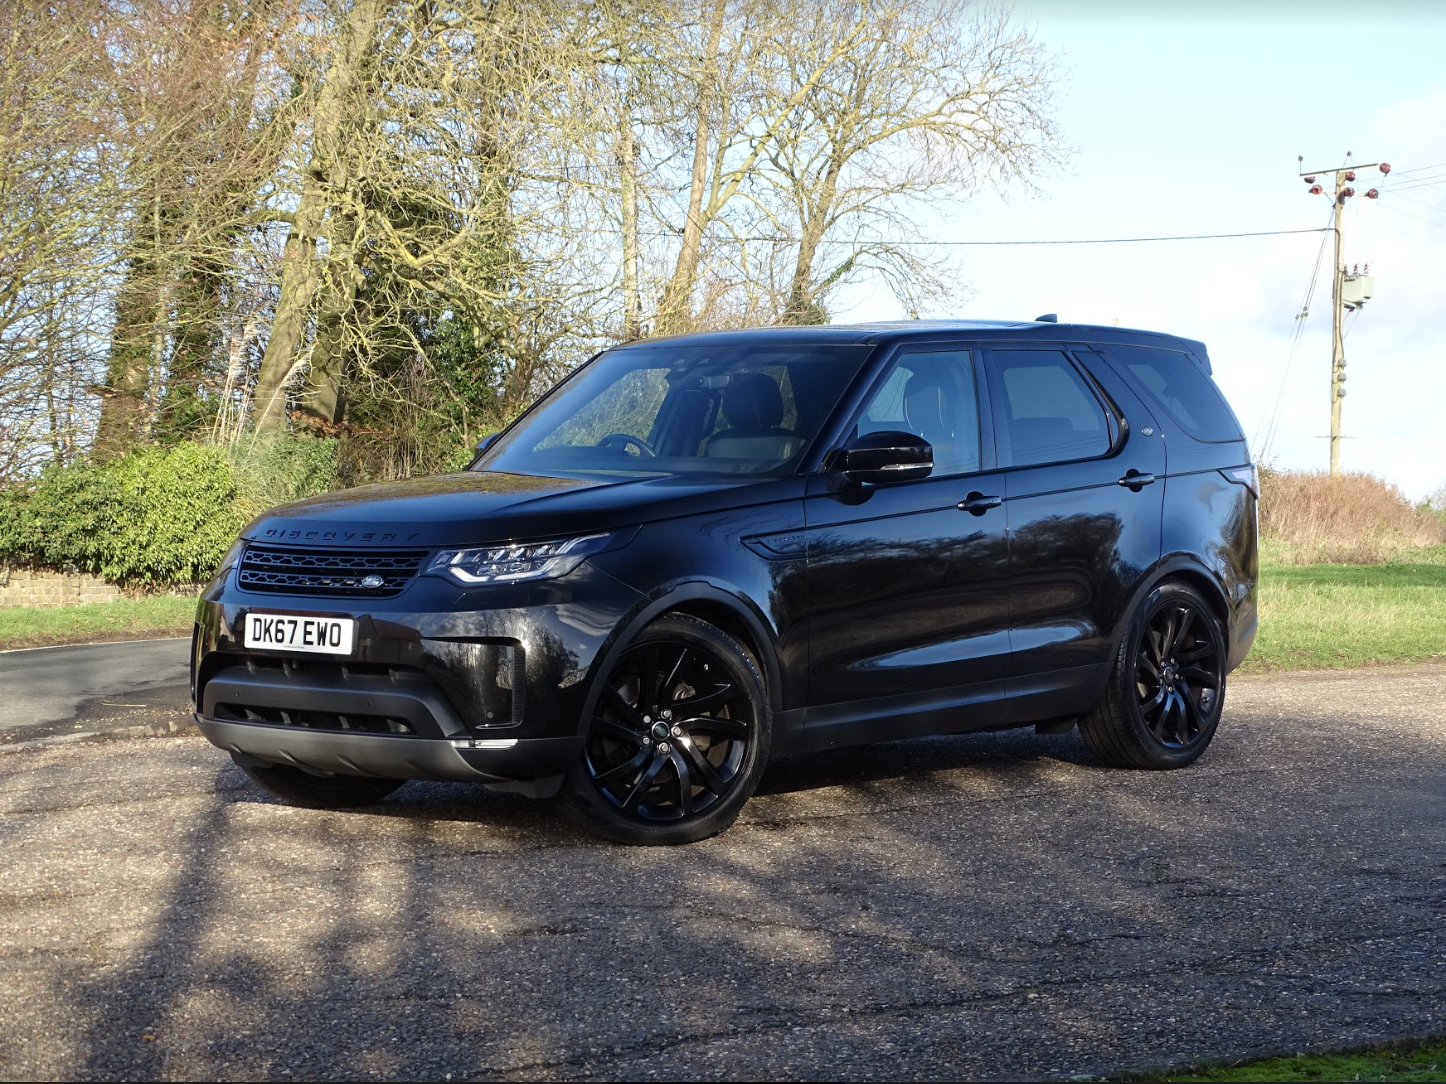 2017 Land Rover  DISCOVERY  3.0 SDV6 HSE 7 SEATER AUTO  41,948 For Sale (picture 1 of 13)